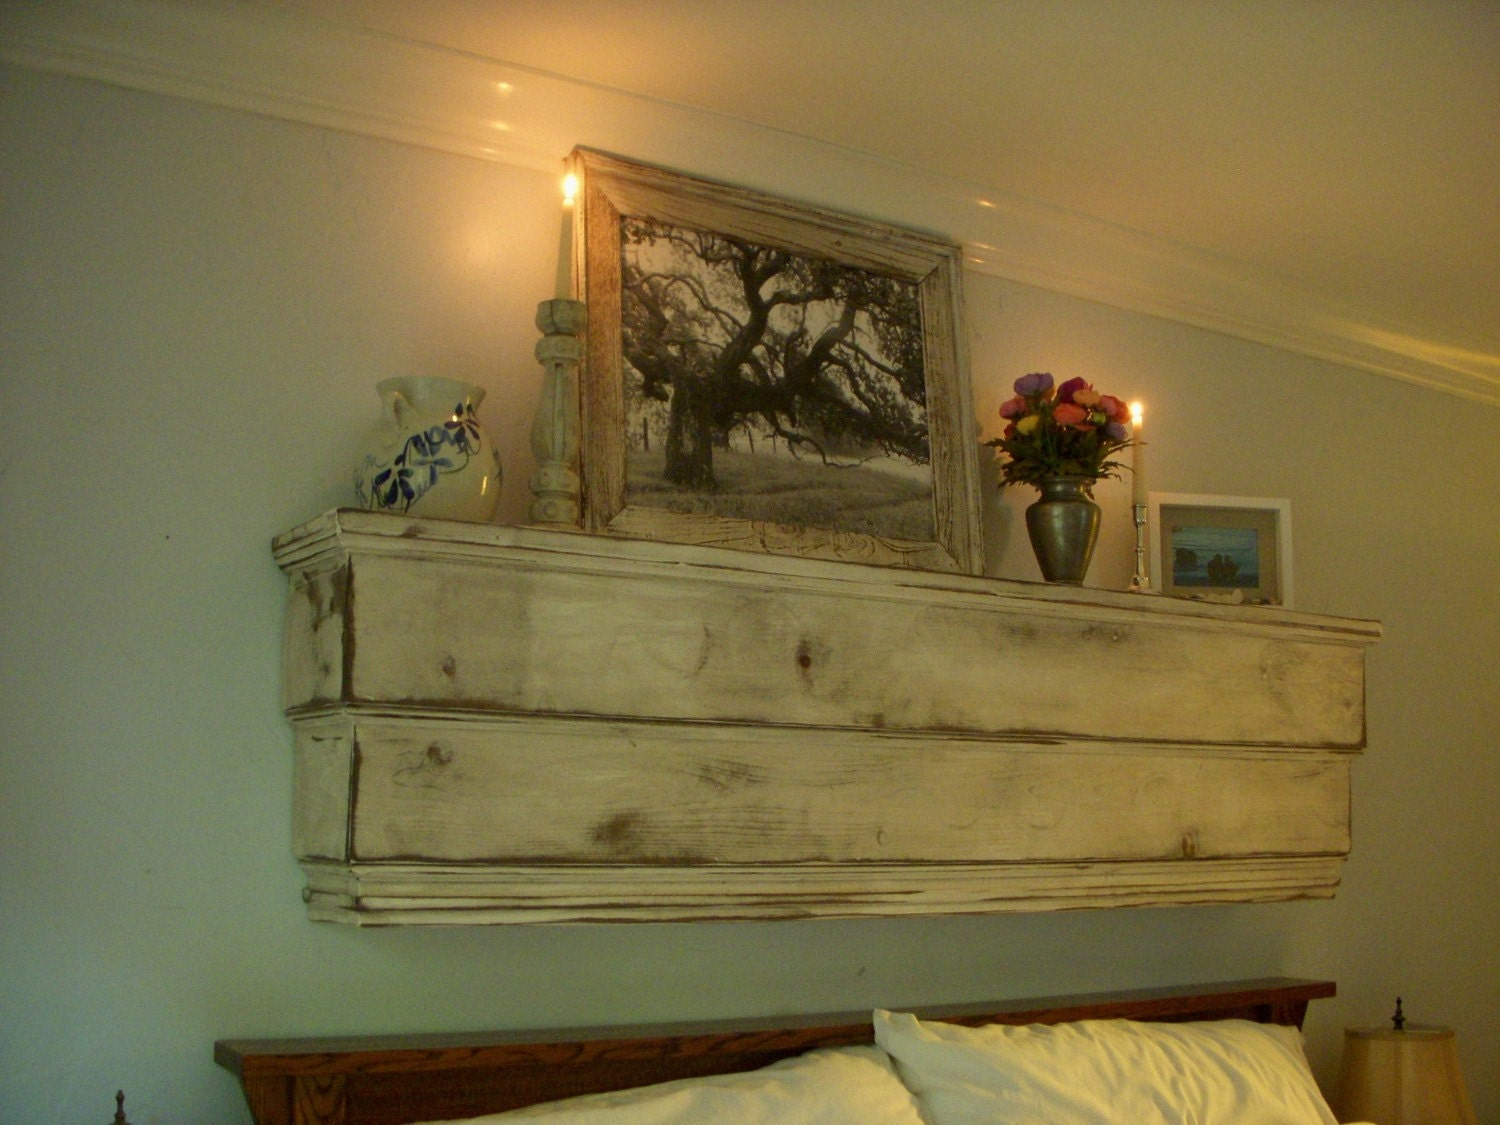 Wood Wall Shelves ~ Floating wall shelf wooden ledge handmade shabby